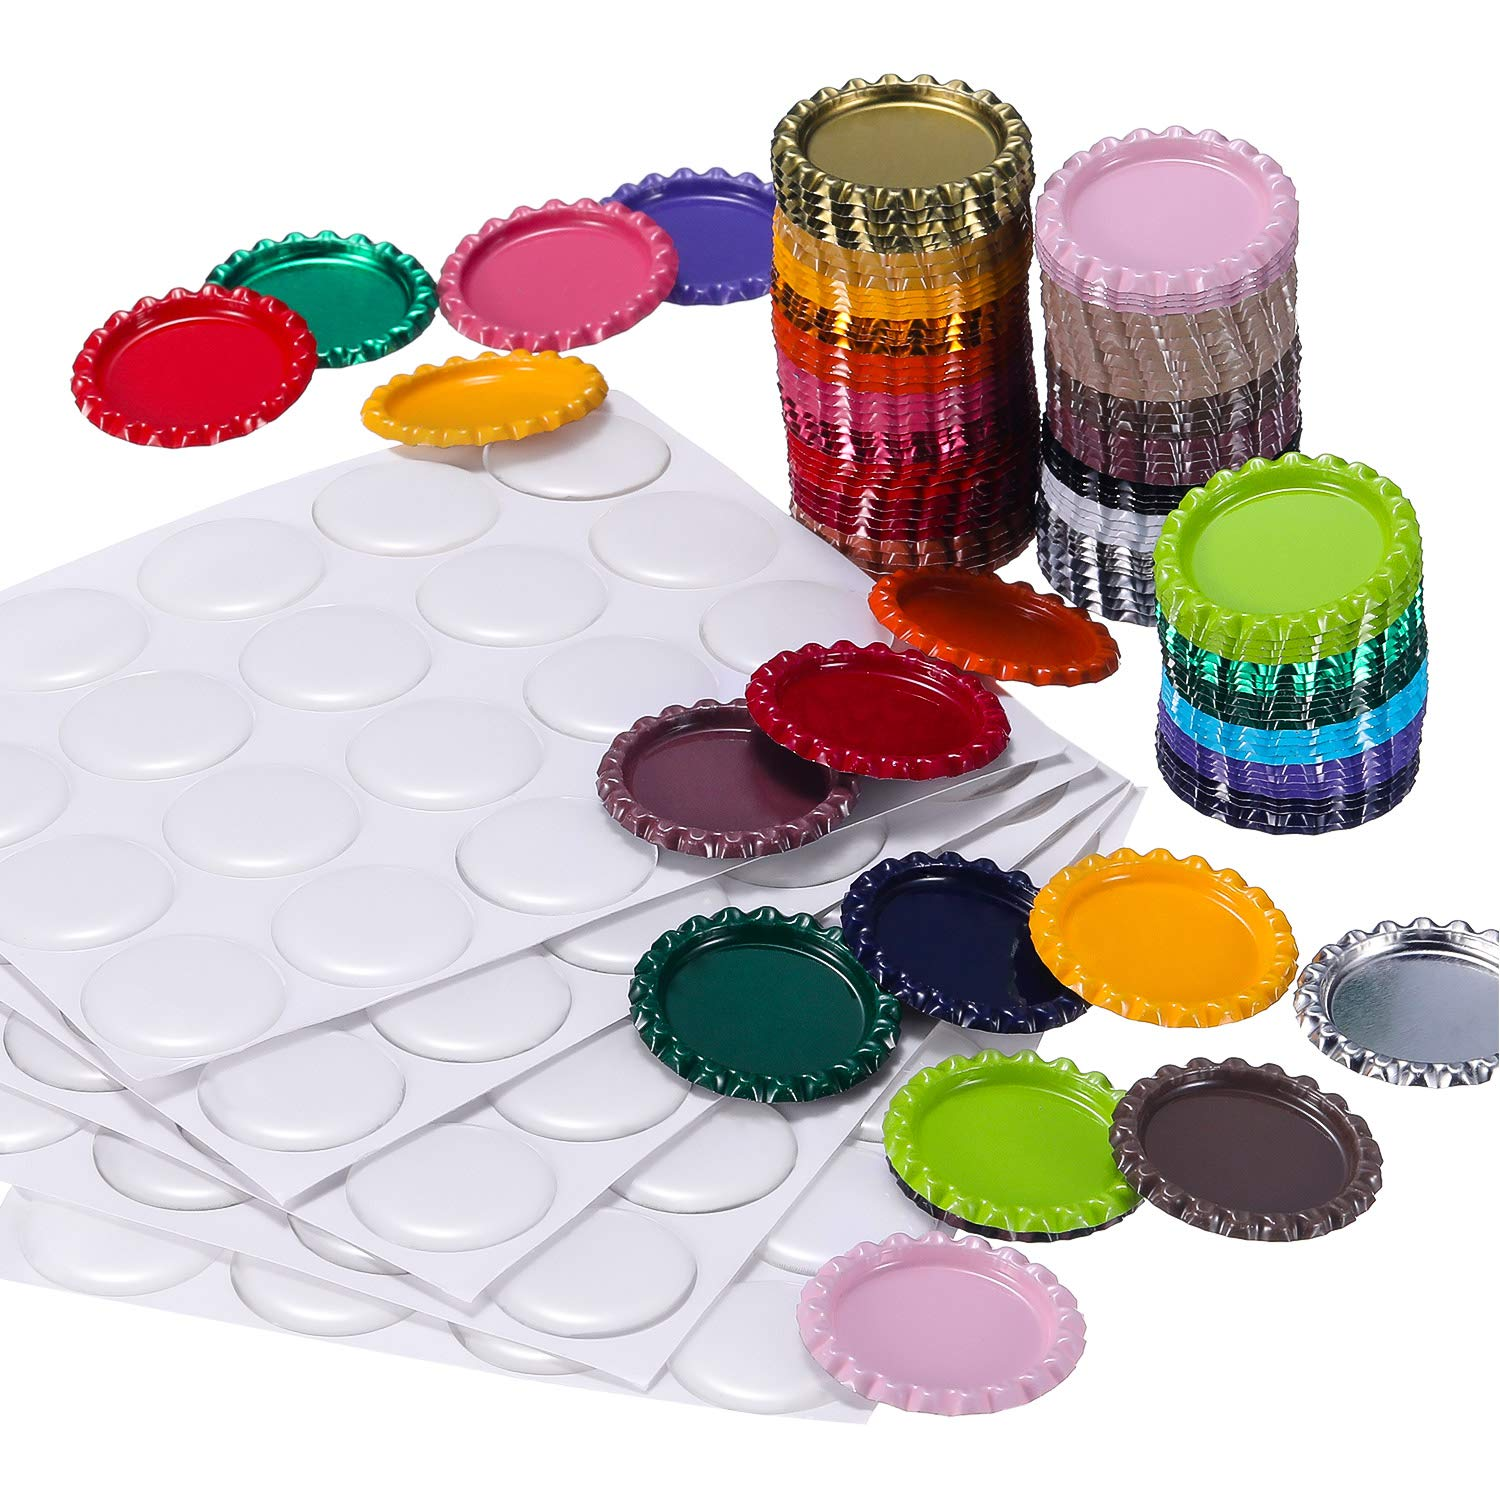 TecUnite 100 Pieces Flattened Bottle Caps in Double Sides Printed Mixed Colors and 100 Pack 1 Inch Clear Stickers for Photo Pendant Craft Jewelry Making 4336983840